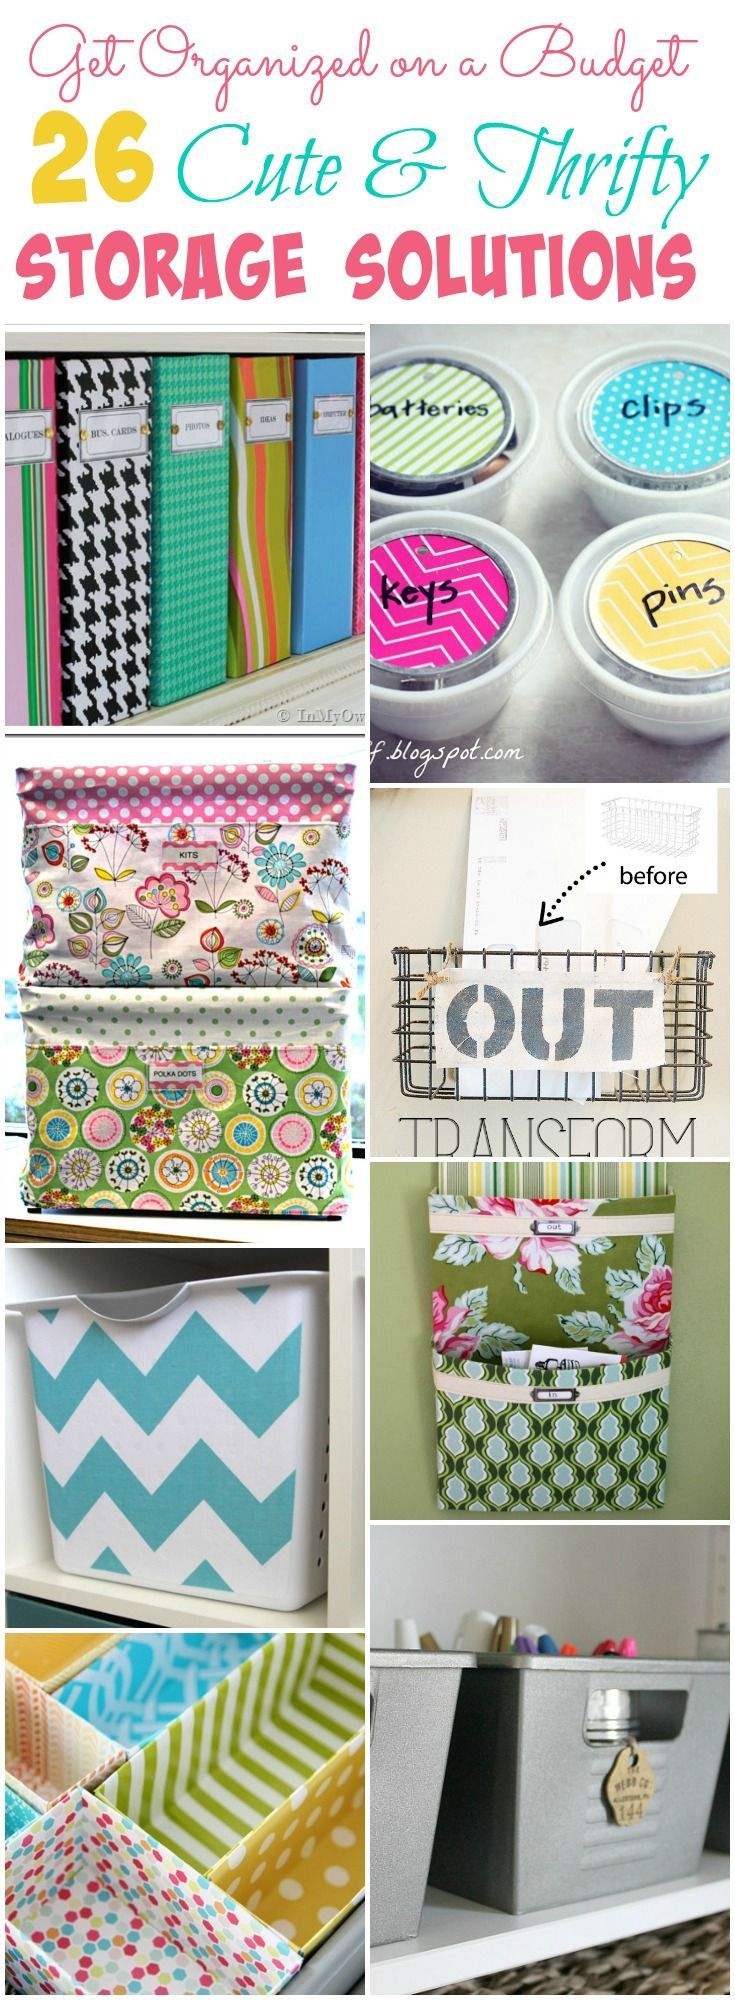 Get yourself organized on a budget with these 26 Cute and Thrifty DIY Storage Solutions at thehappyhousie.com